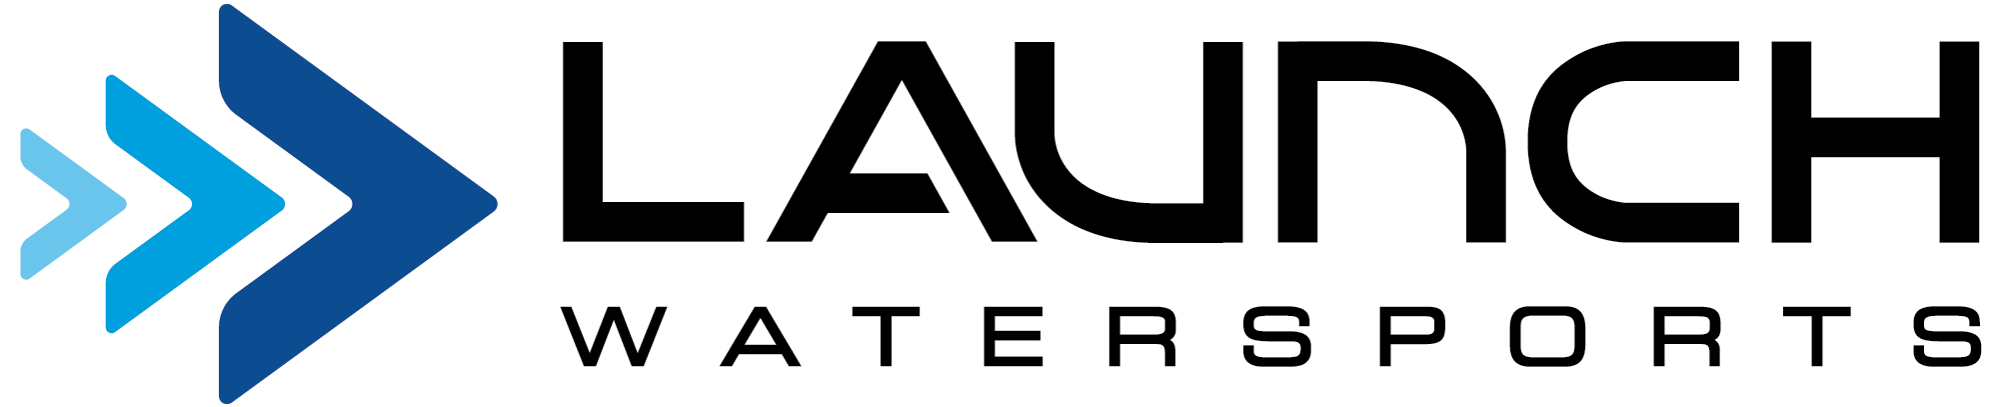 Launch Watersports - Great Falls logo